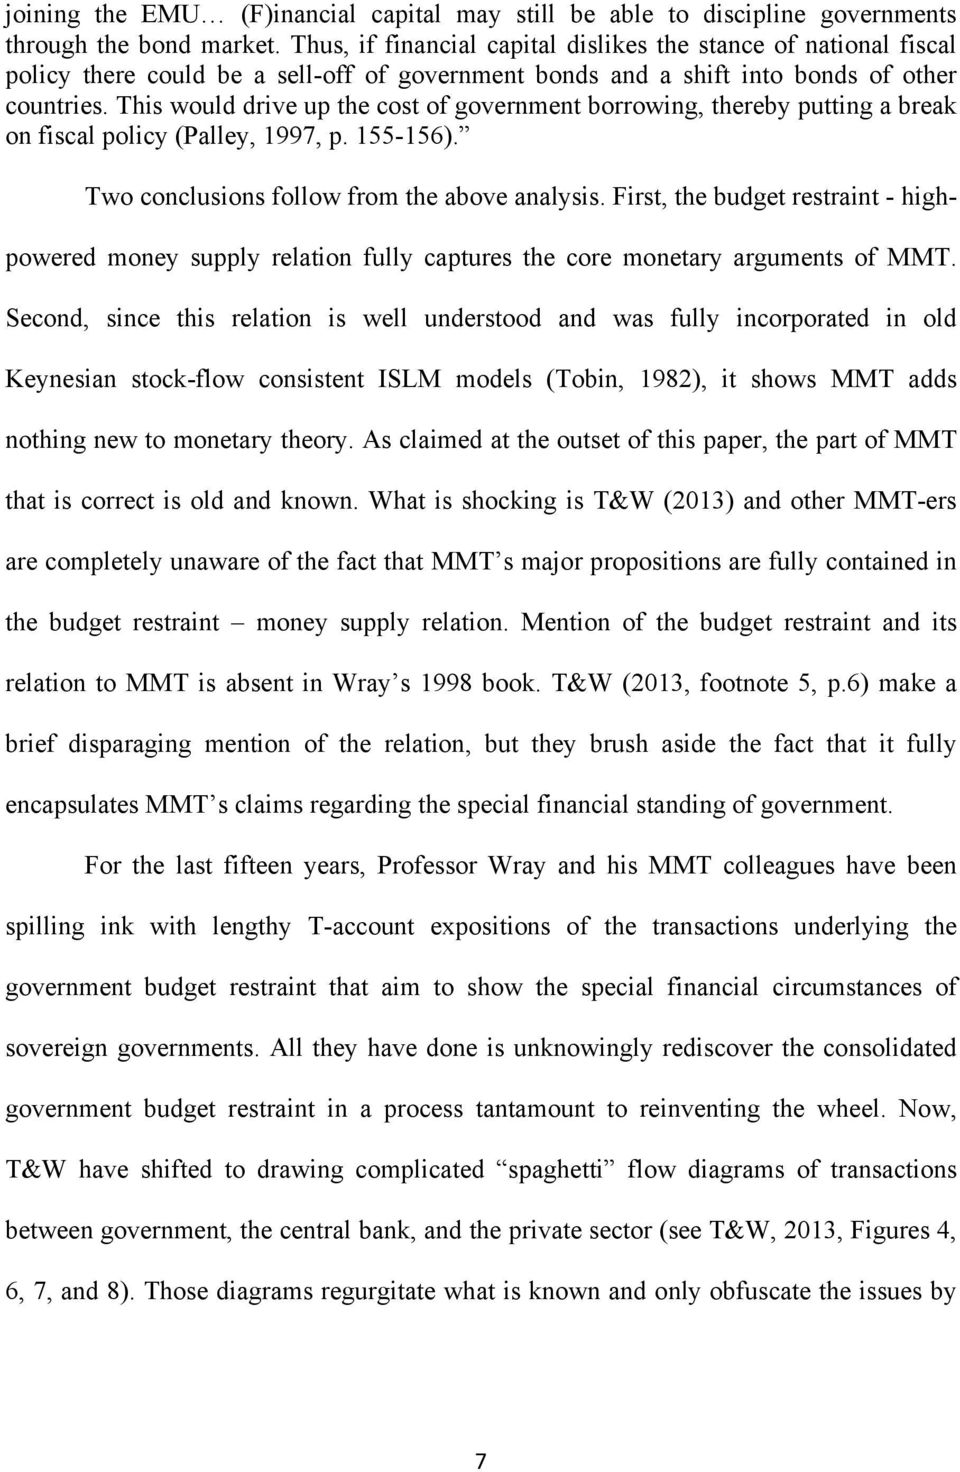 This would drive up the cost of government borrowing, thereby putting a break on fiscal policy (Palley, 1997, p. 155-156). Two conclusions follow from the above analysis.